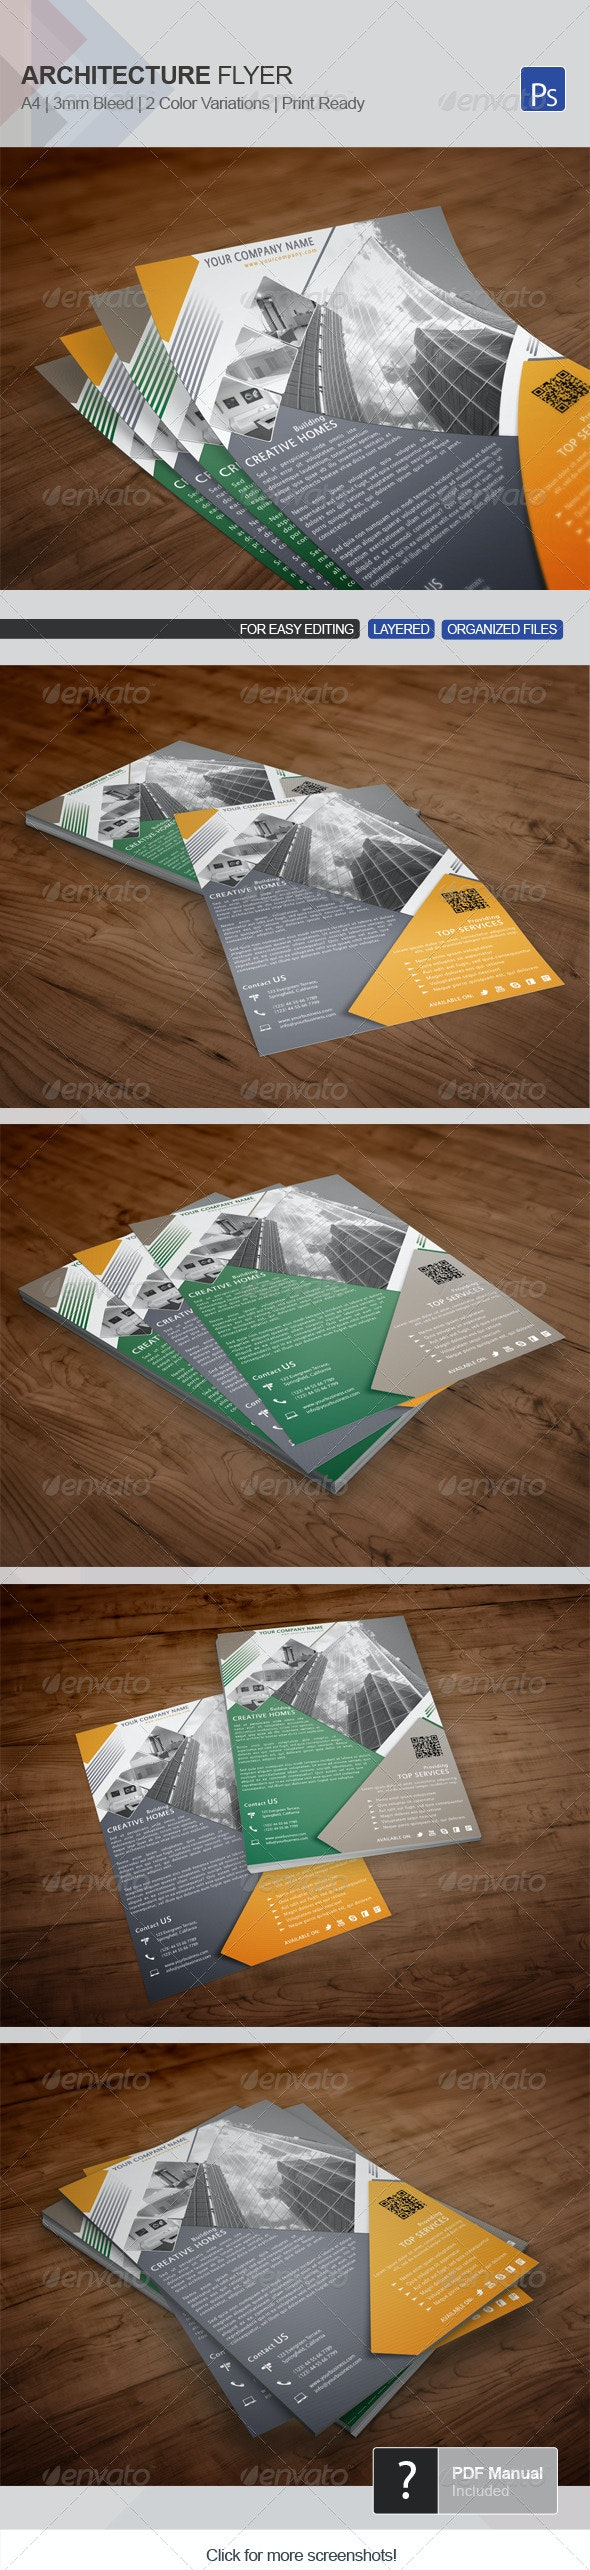 Architecture Flyer Template 09 - Corporate Flyers